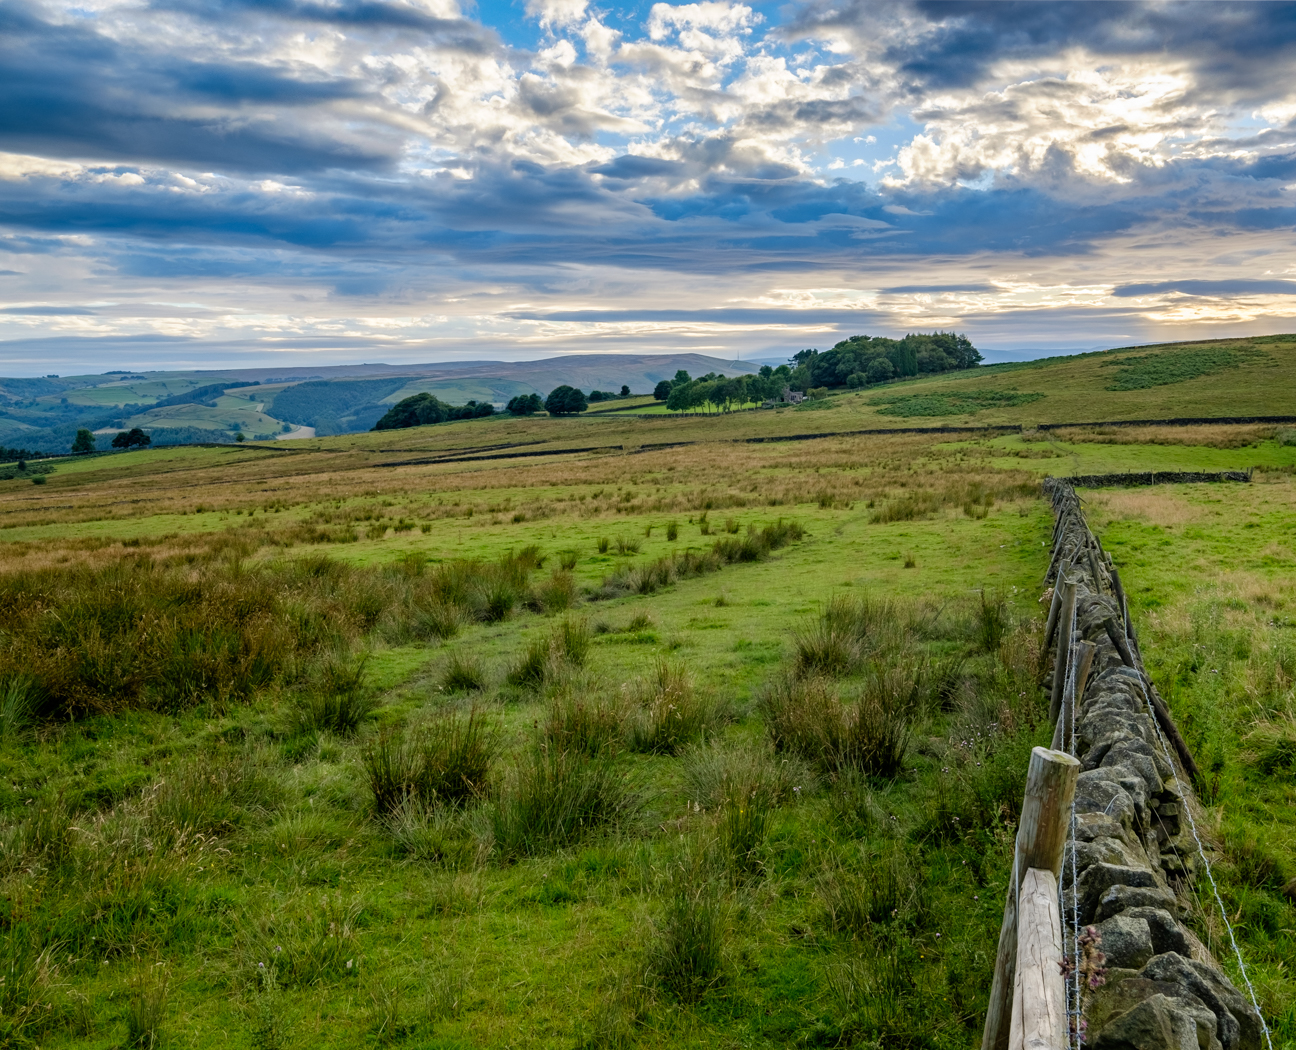 PEAK DISTRICT EVENING by Chris Reynolds